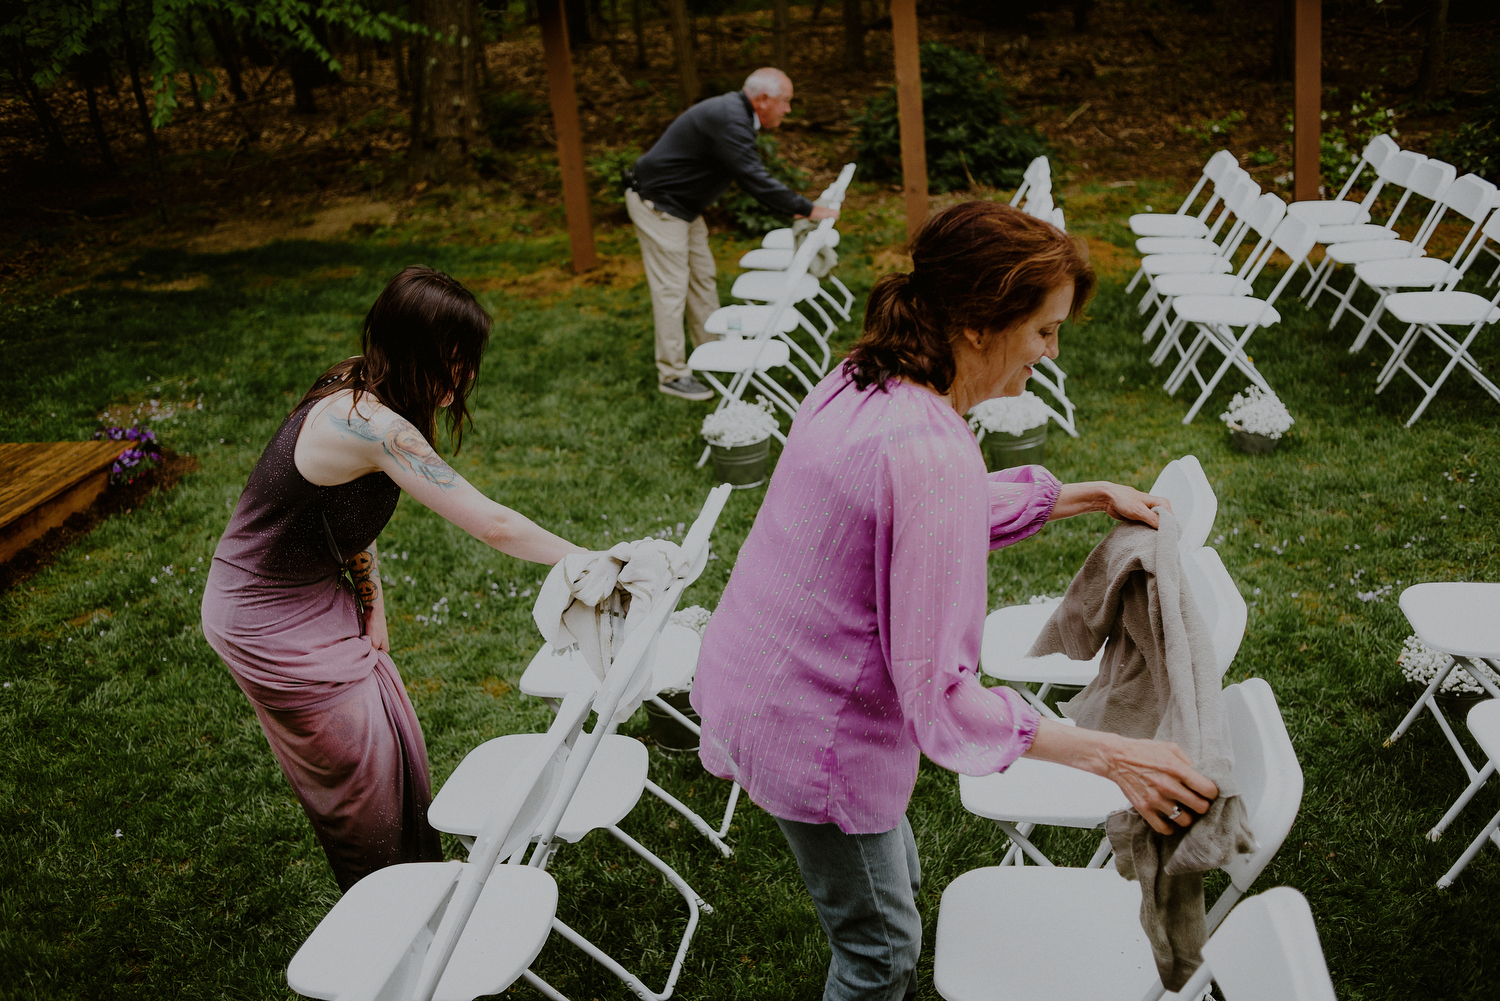 family helps prepare nj backyard wedding in cream ridge